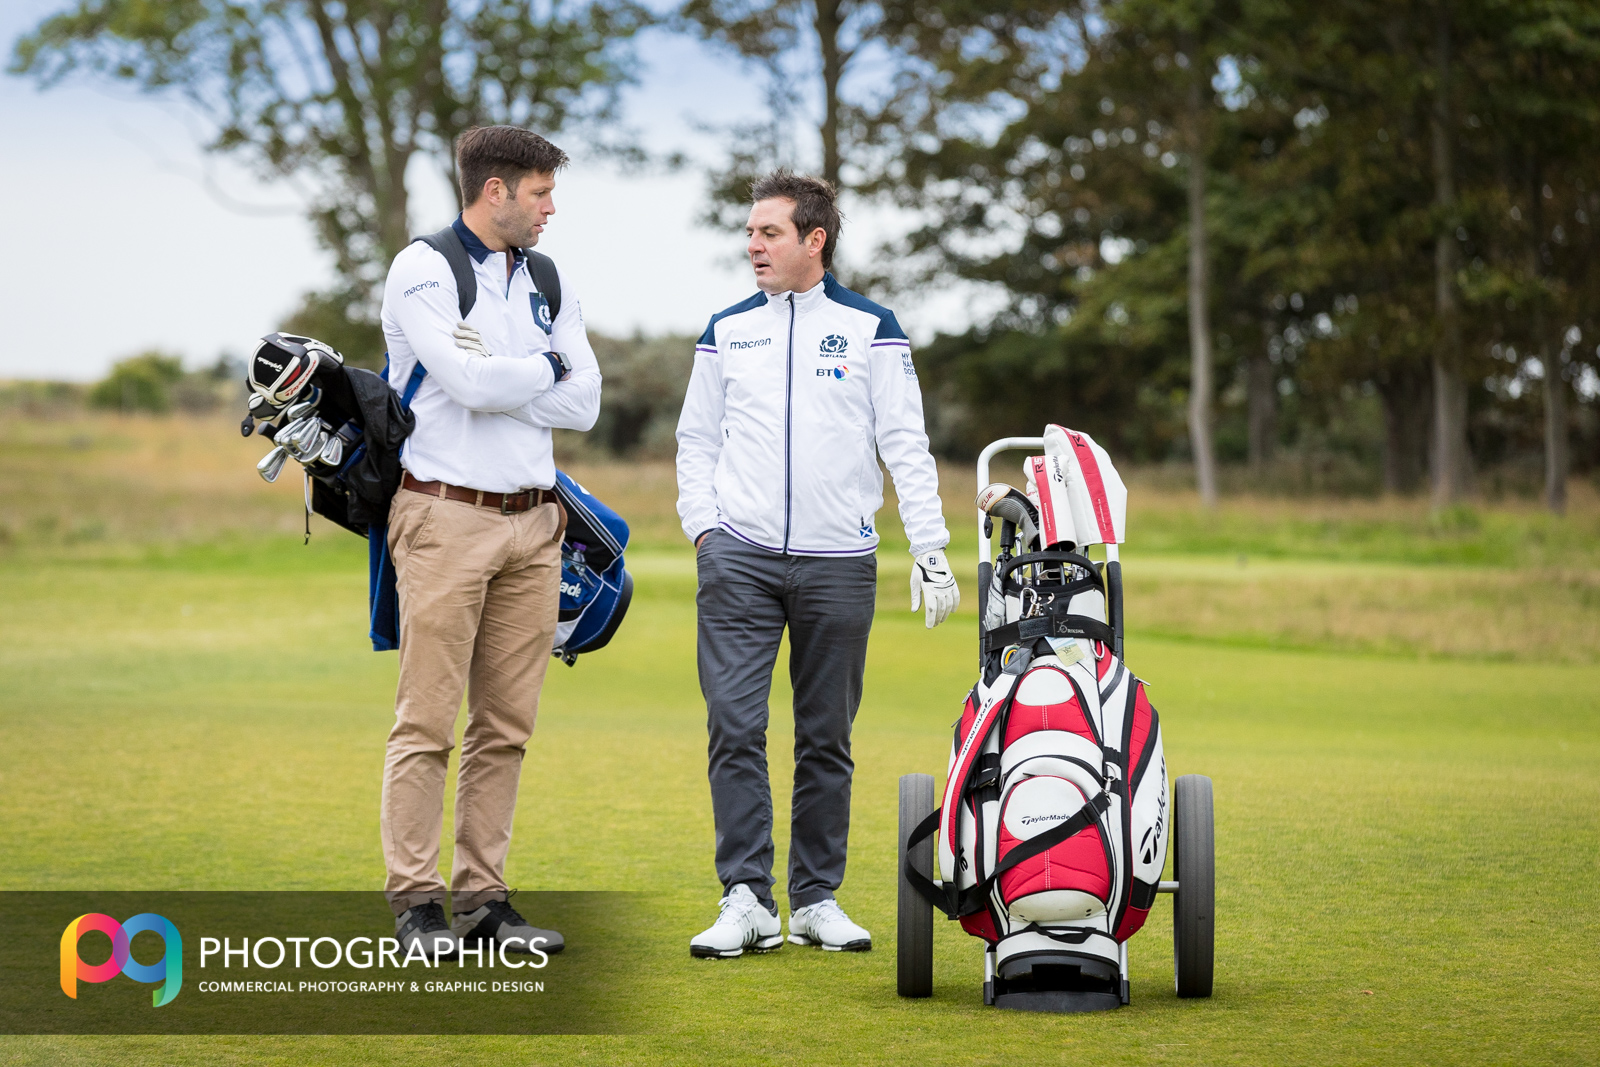 charity-golf-pr-event-photography-glasgow-edinburgh-scotland-17.jpg